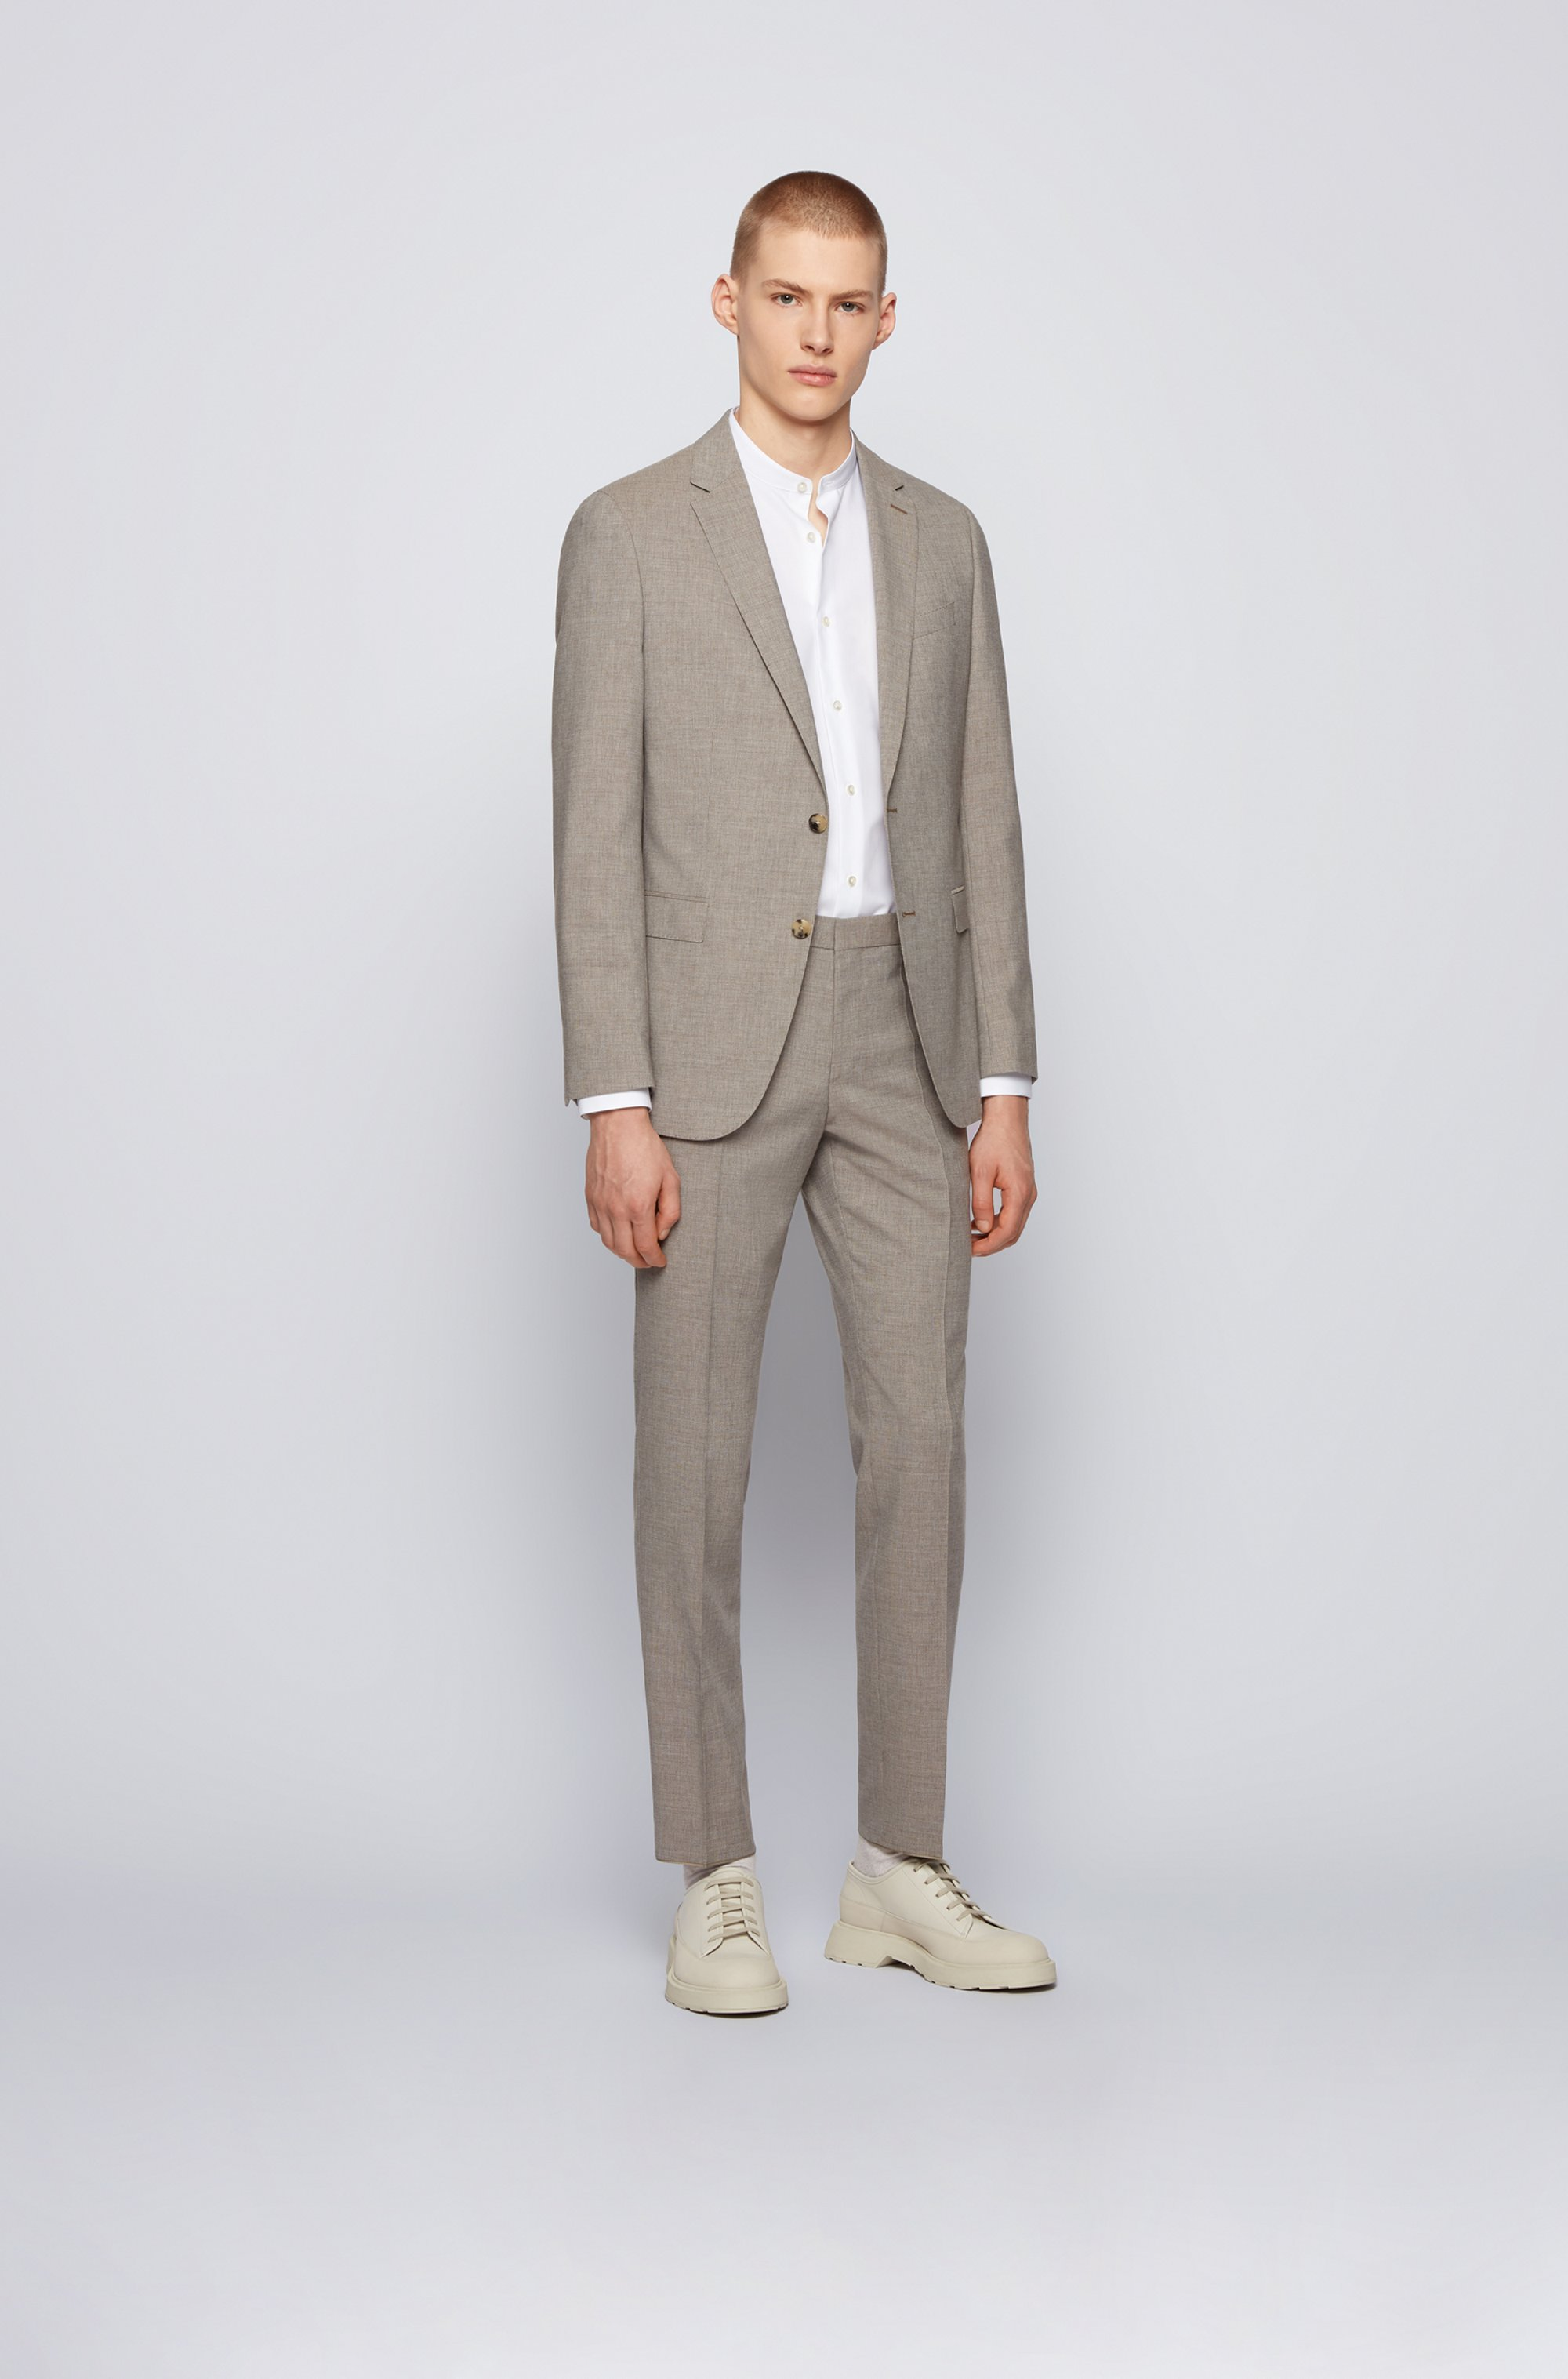 Micro-patterned slim-fit suit with soft construction